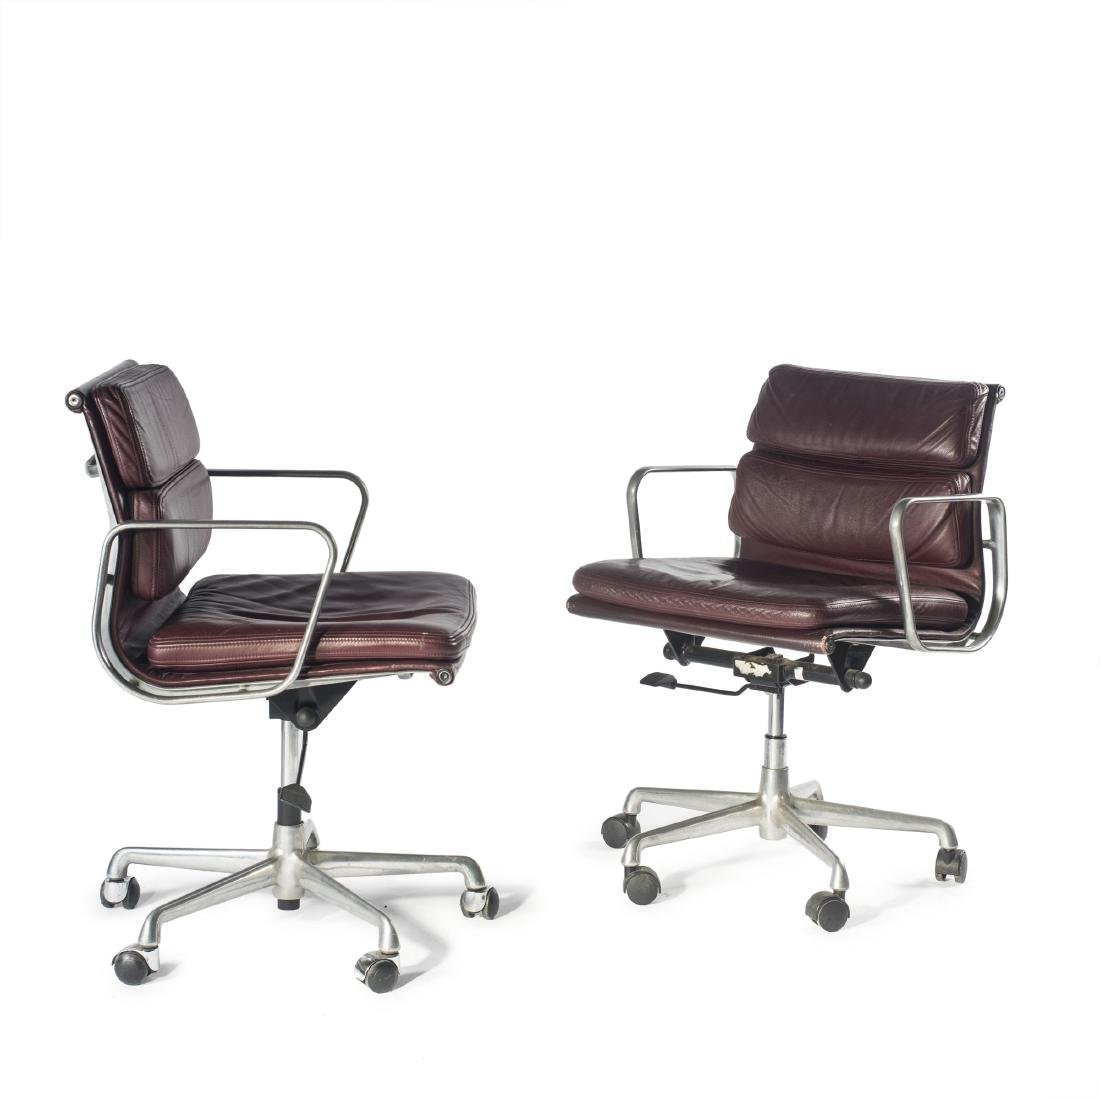 Two 'Soft Pad' office chairs, 1969